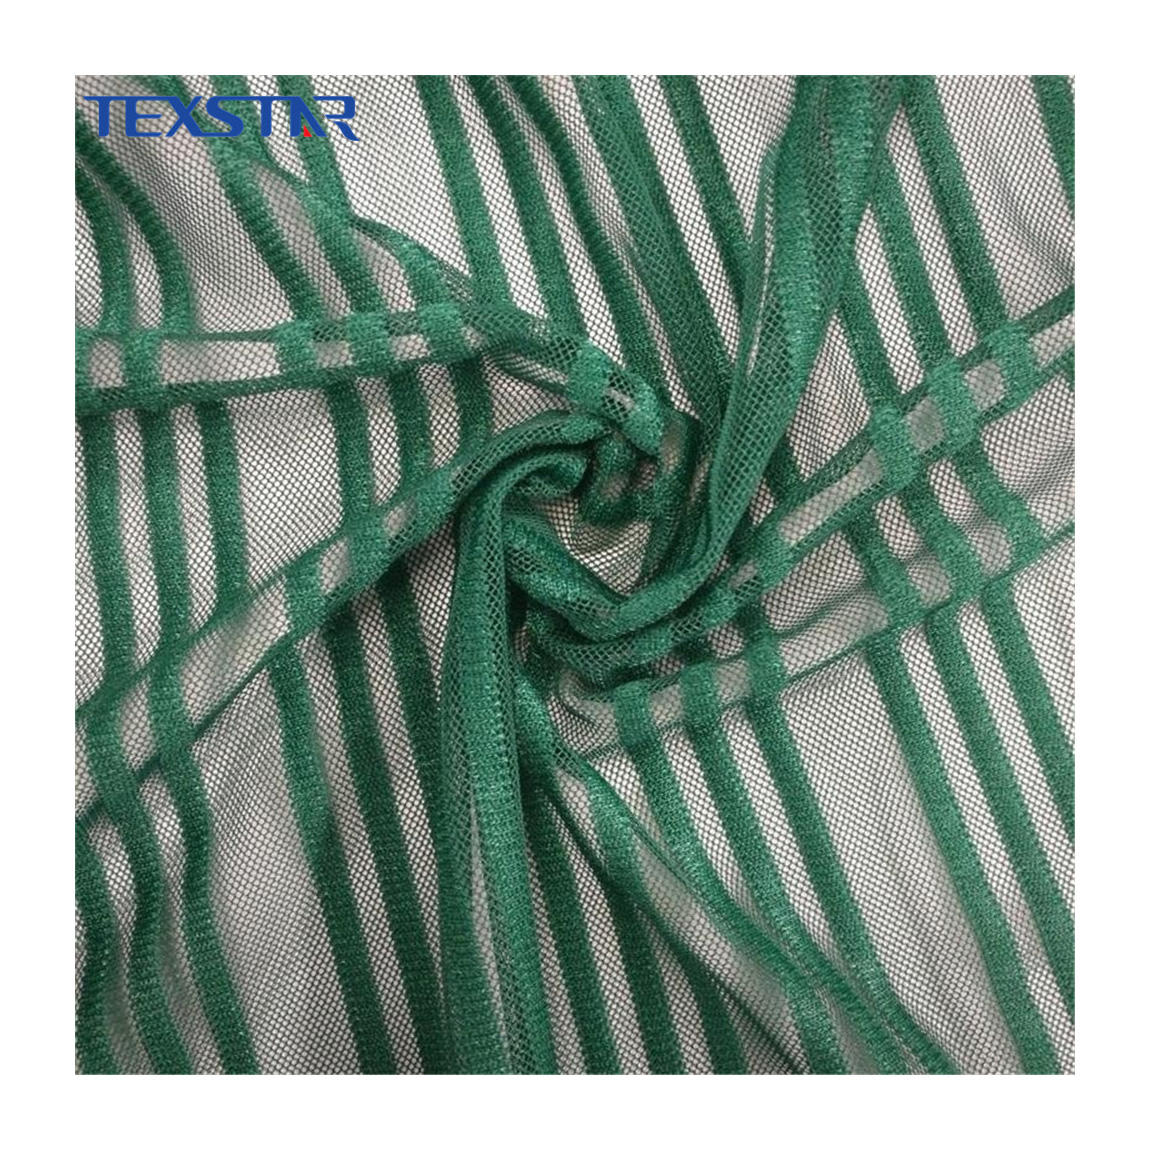 Tricot knit stripe stretch eco-friendly spandex soft tulle fabric